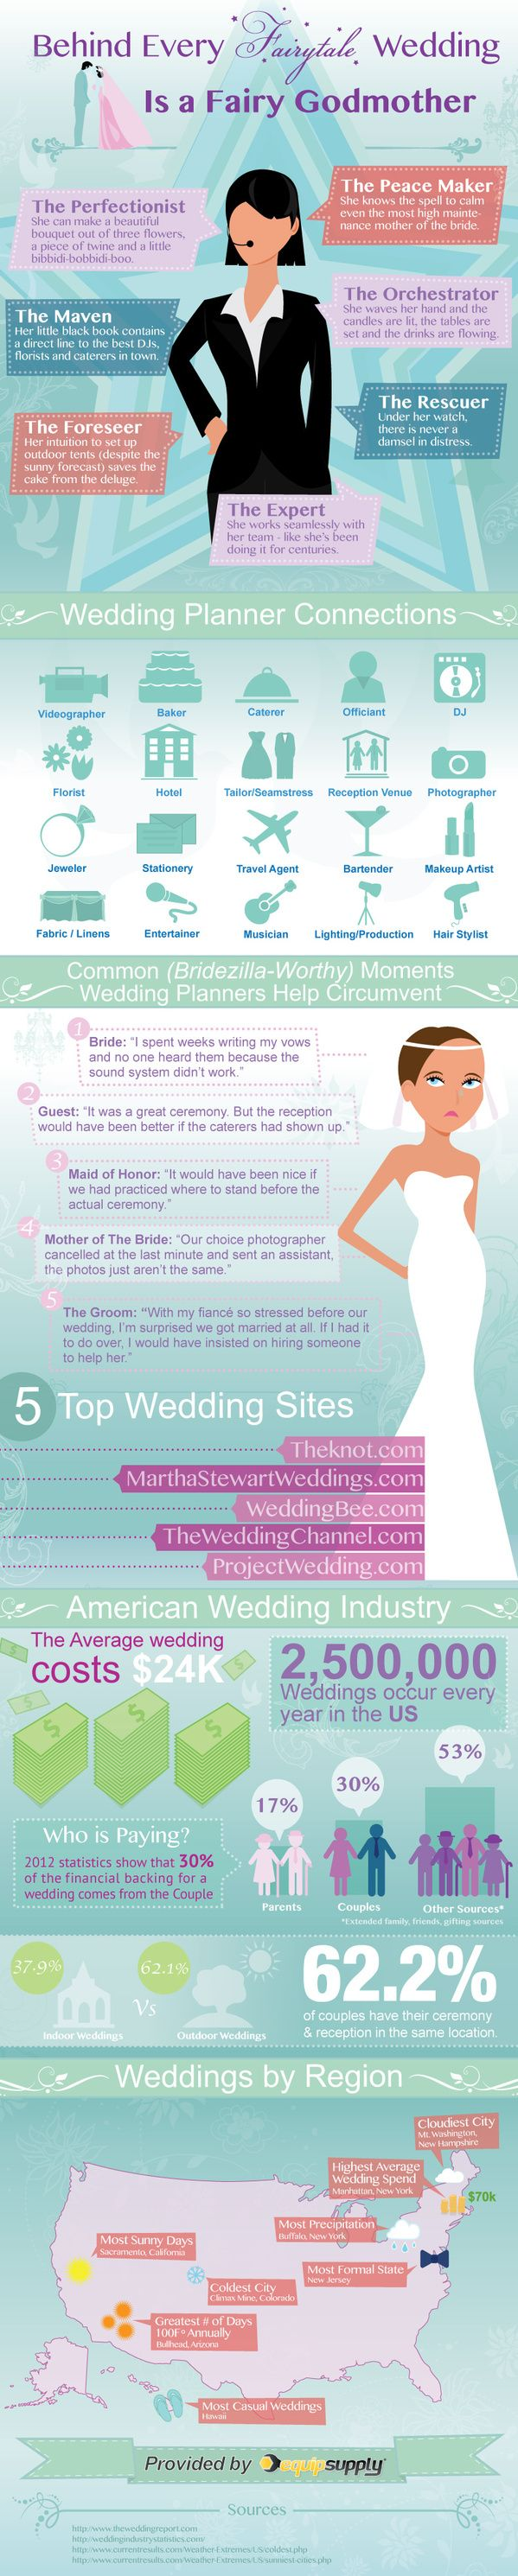 Best 25 Wedding planner jobs ideas on Pinterest Wedding